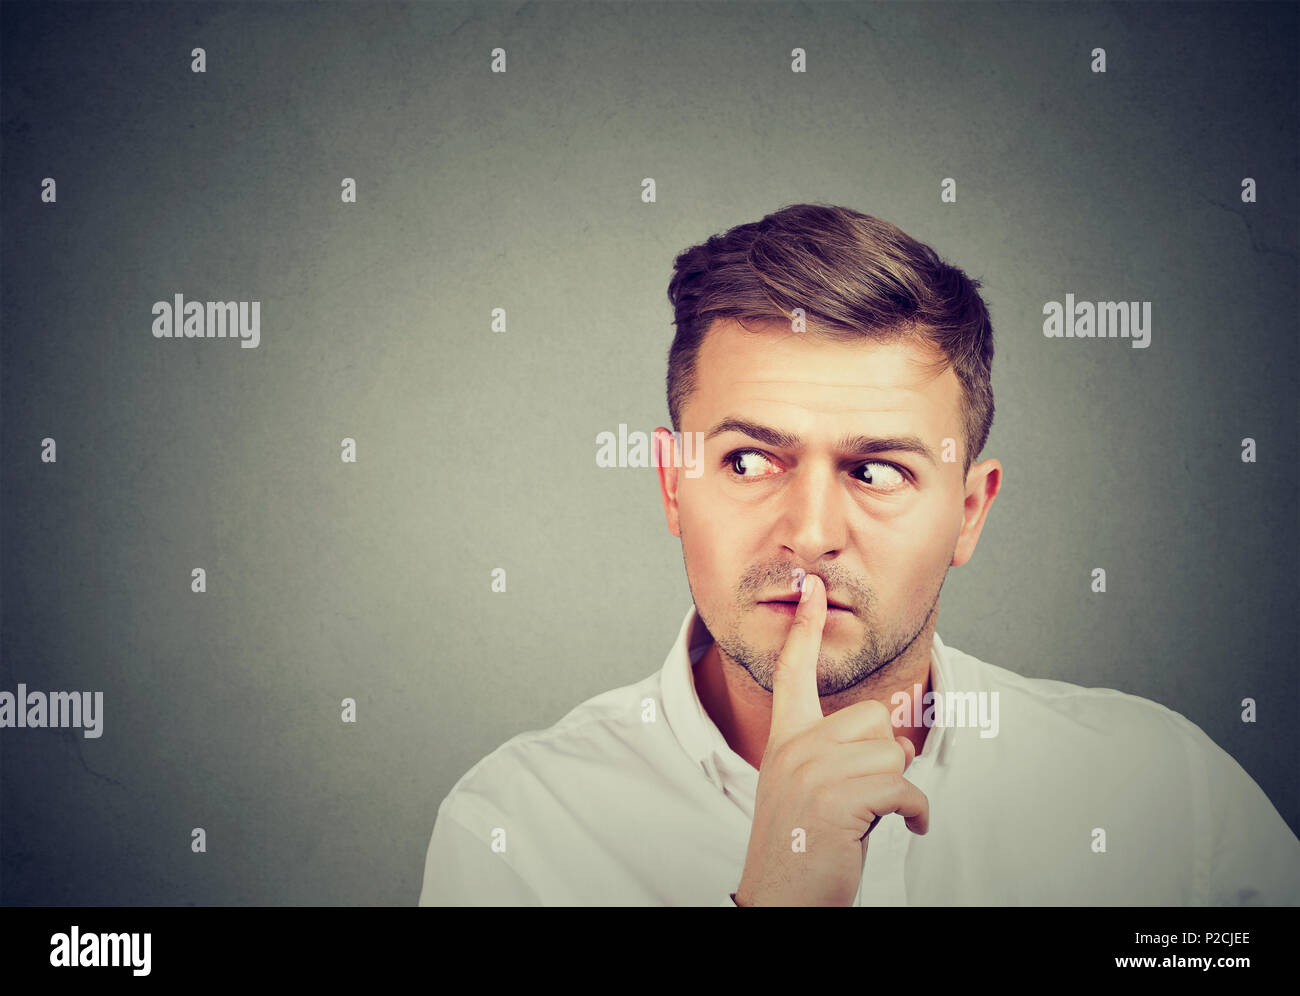 Man asking for silence and secrecy holding finger on lips and looking away in conspiracy - Stock Image